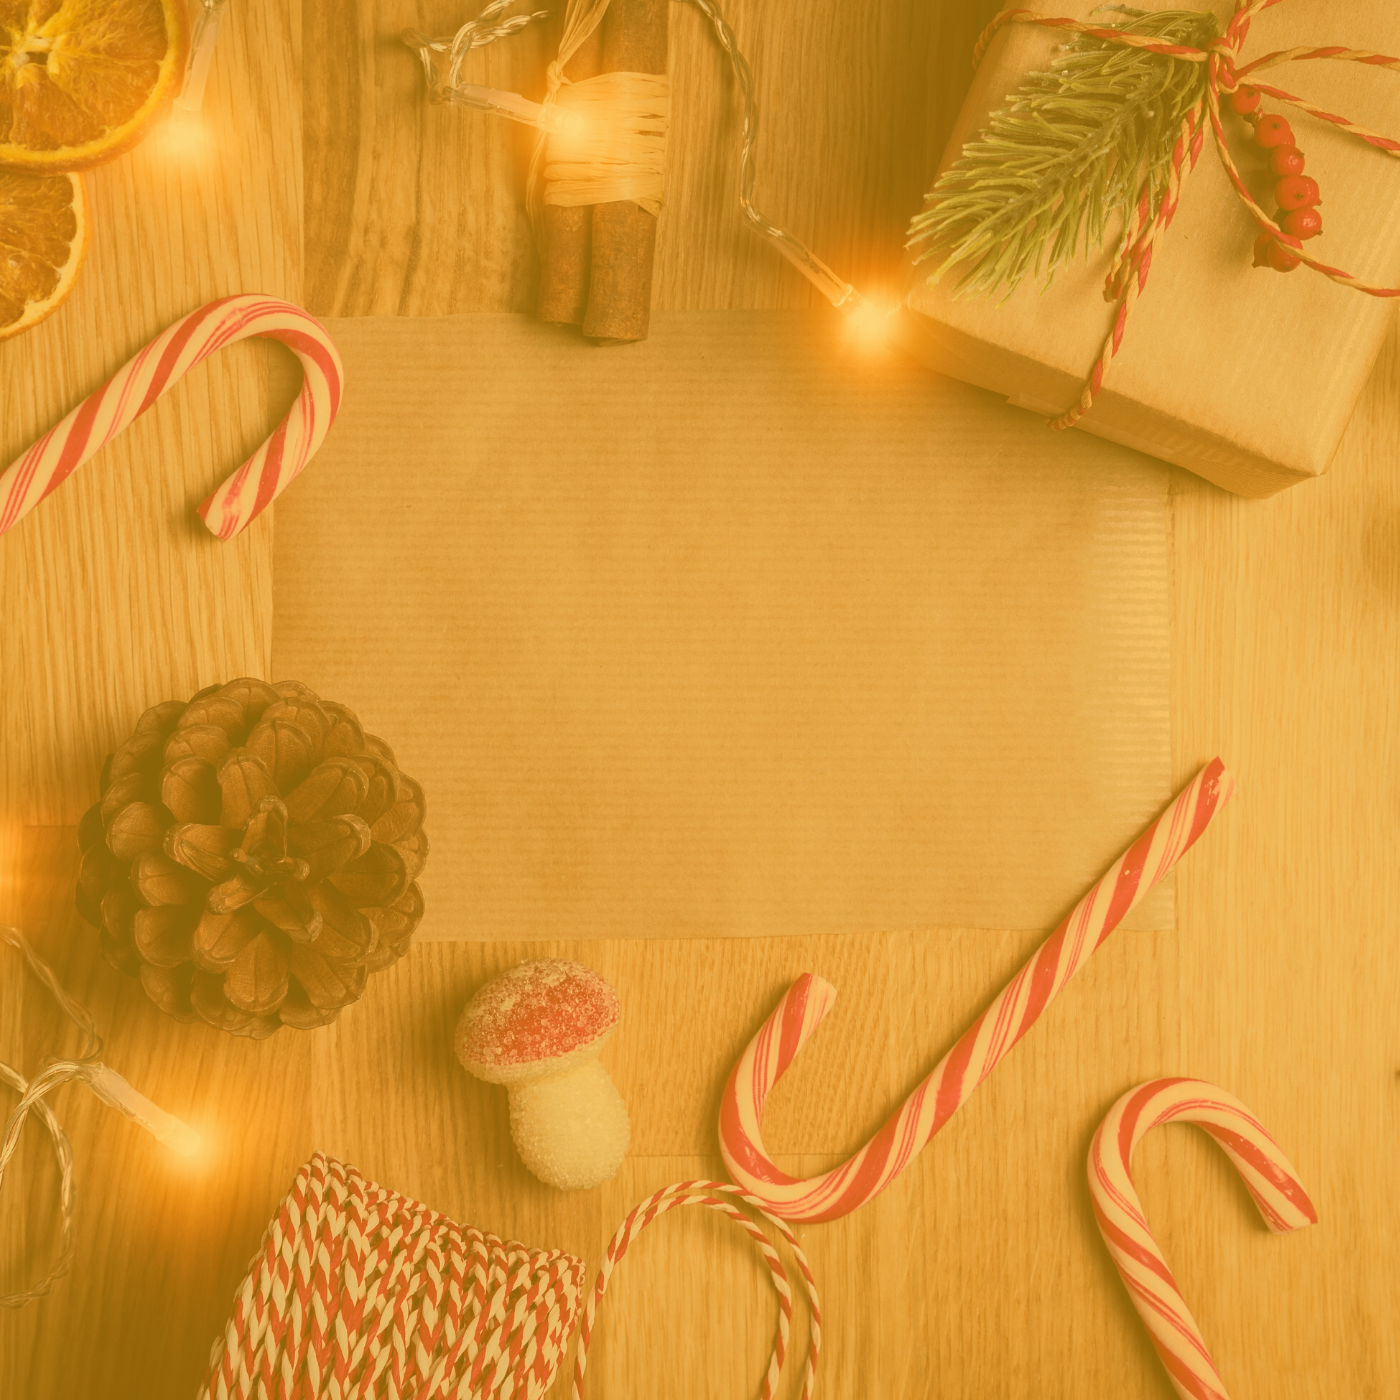 5 Content Ideas to Drive Holiday Engagement On Social Media